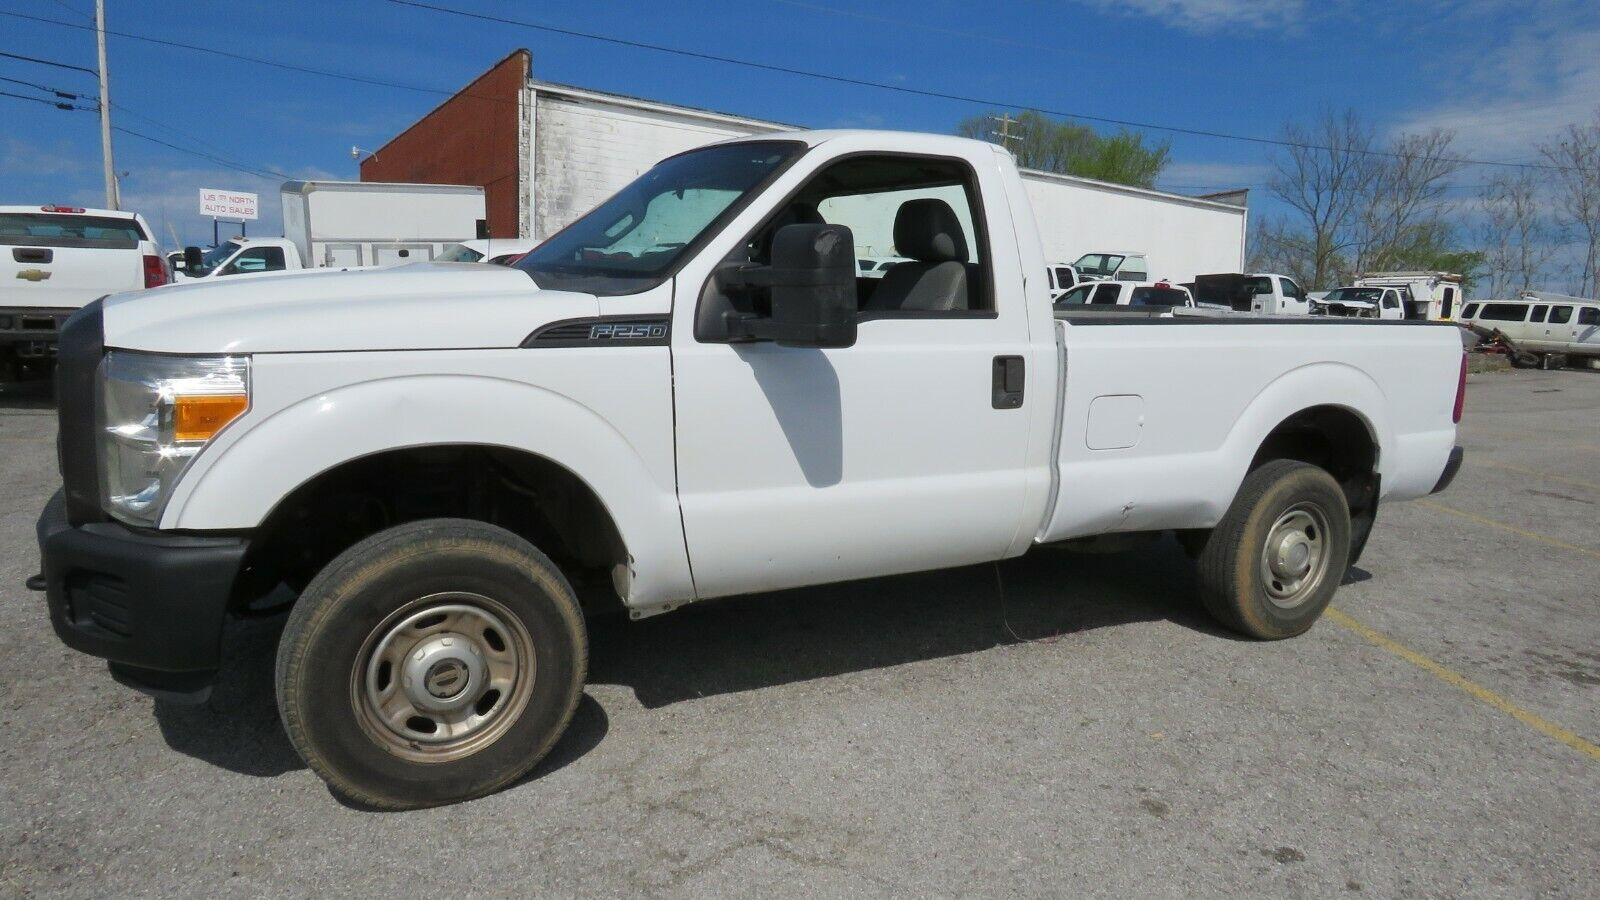 RETIRED FLEET LEASE!!RUNS GREAT!READY TO GO BACK TO WORK!!RUST FREE FRAME!!$$$$$